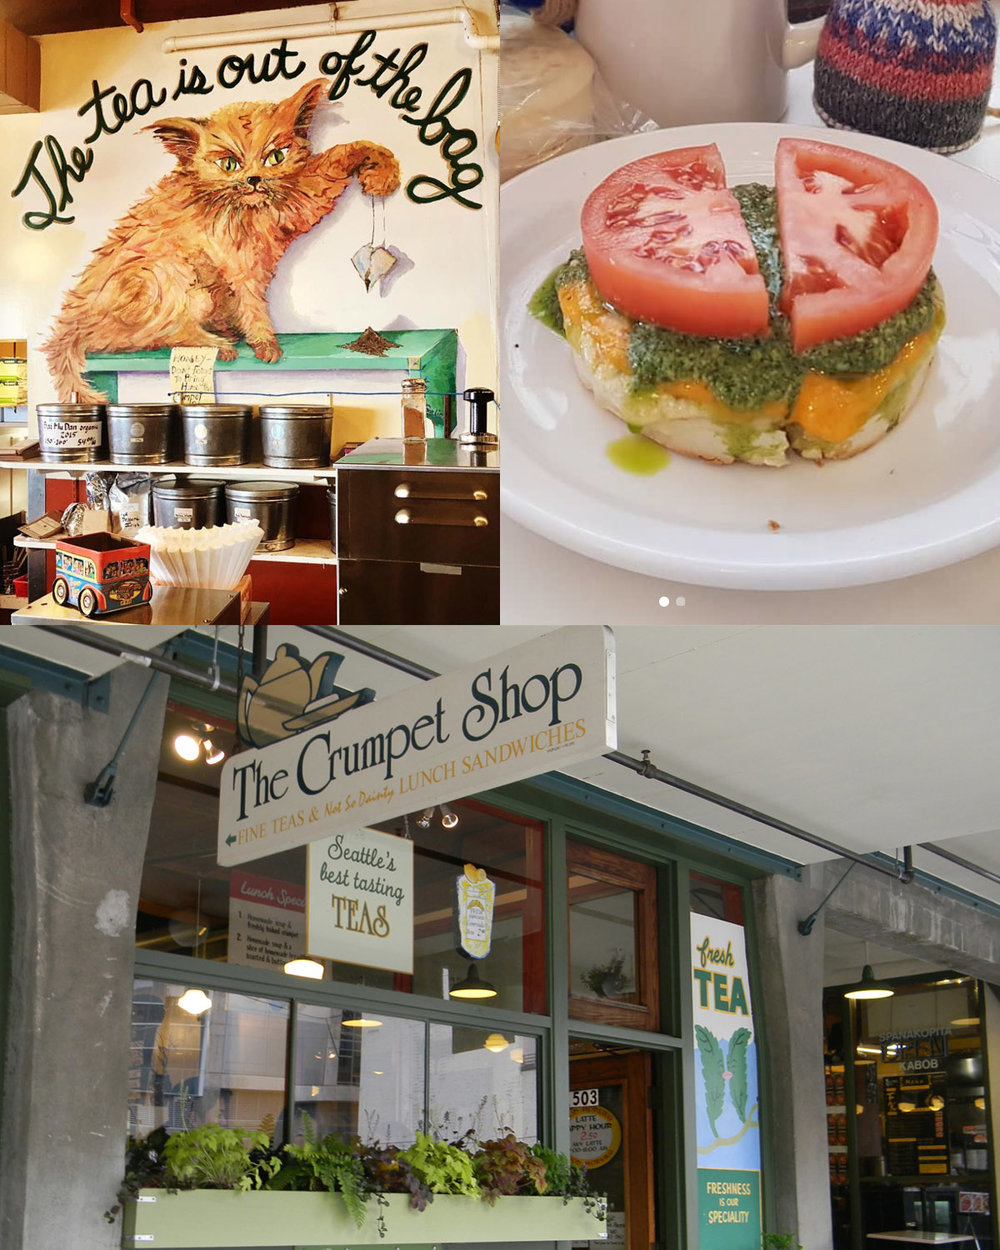 The Crumpet Shop - The Crumpet Shop is a Pike Place market destination.  Fresh crumpets, fine teas, and coffees.